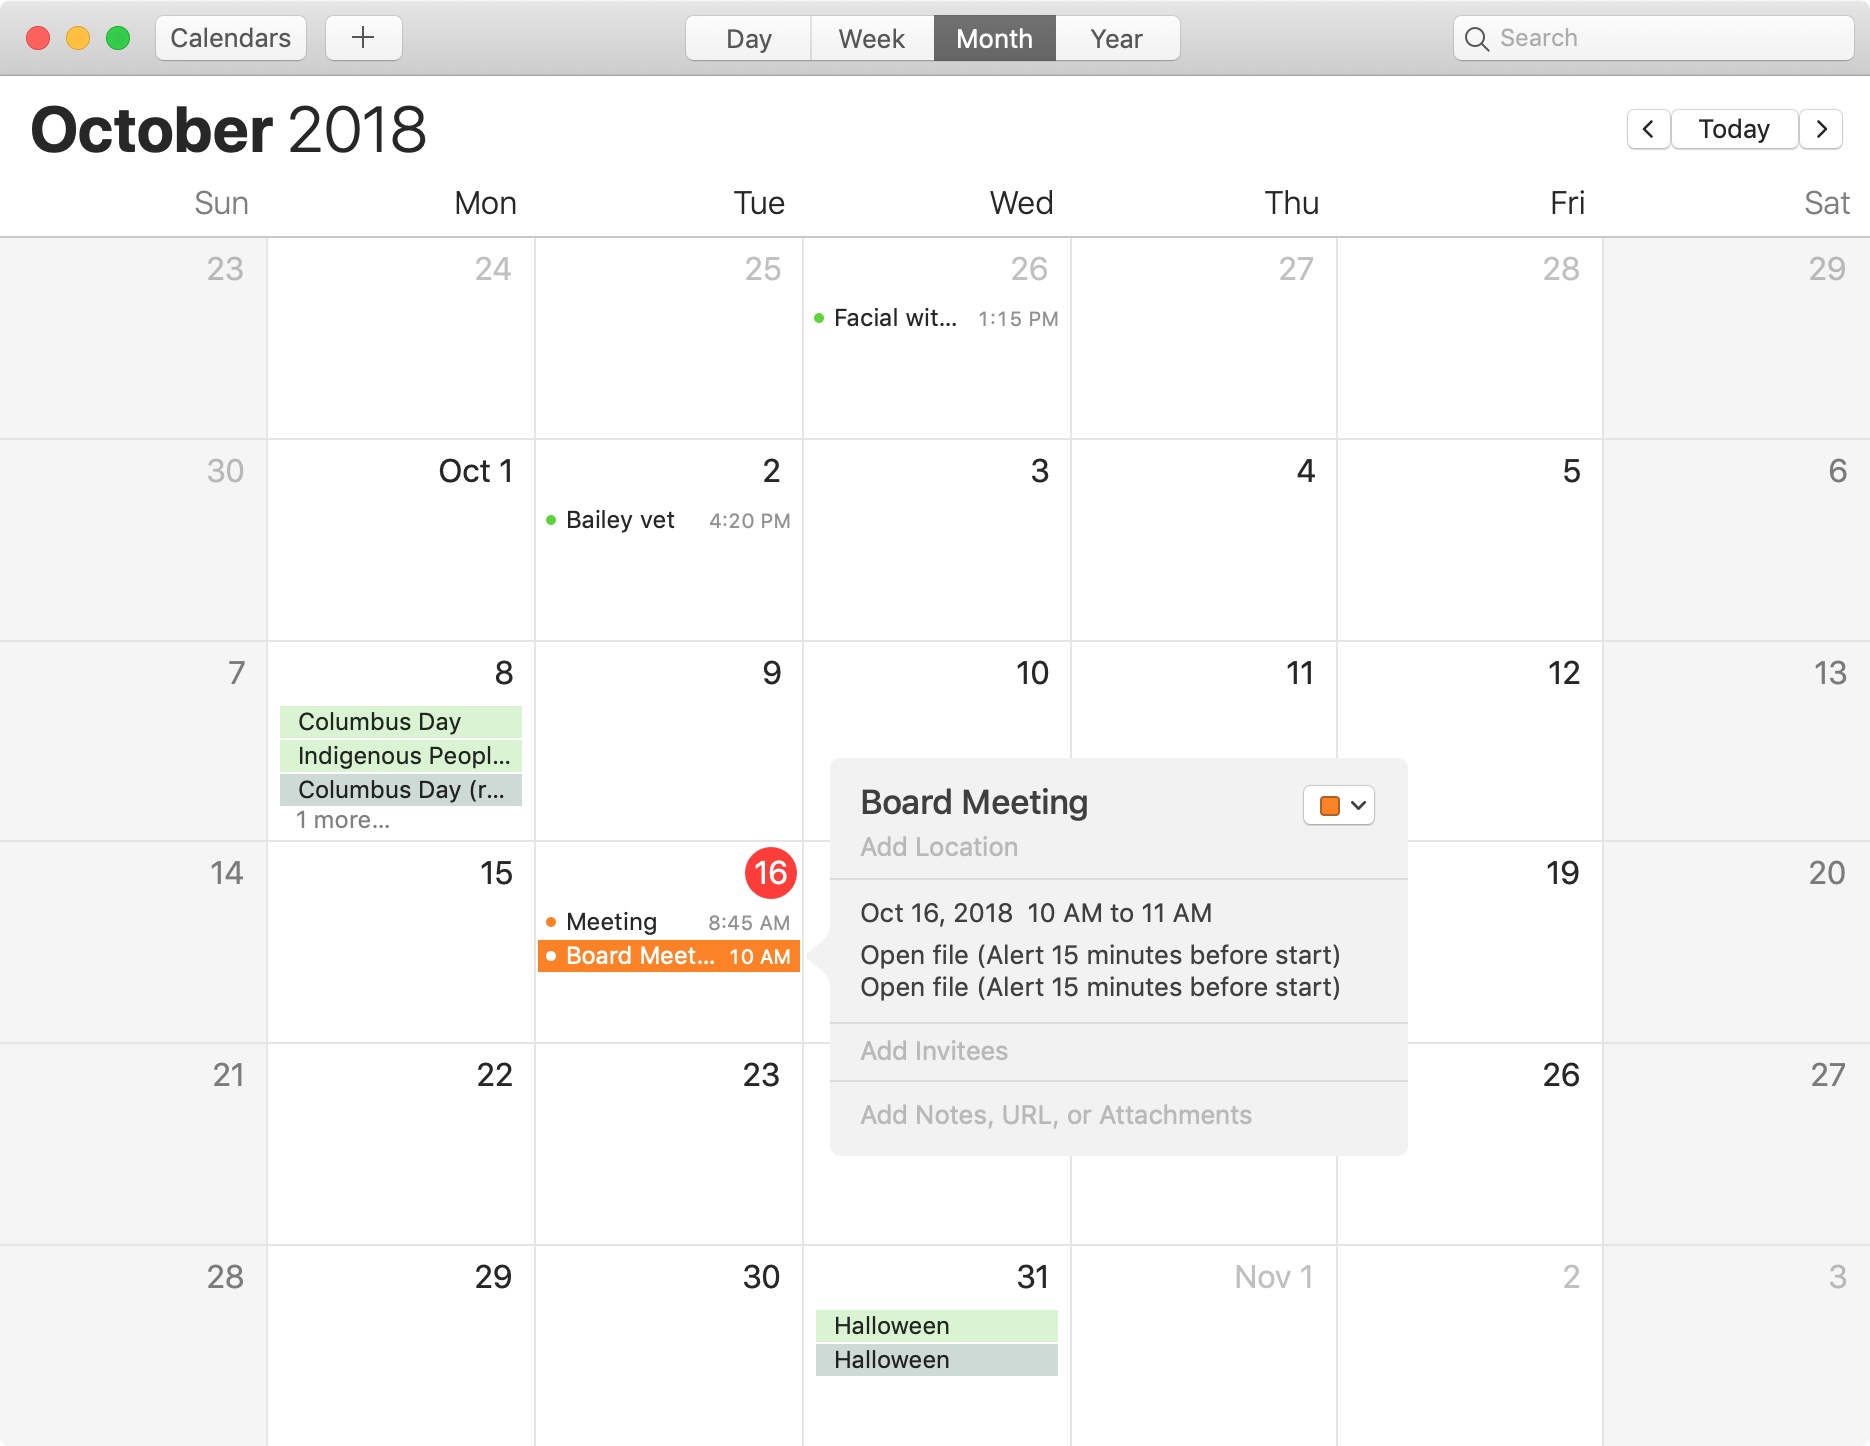 mac calendar open file alerts set